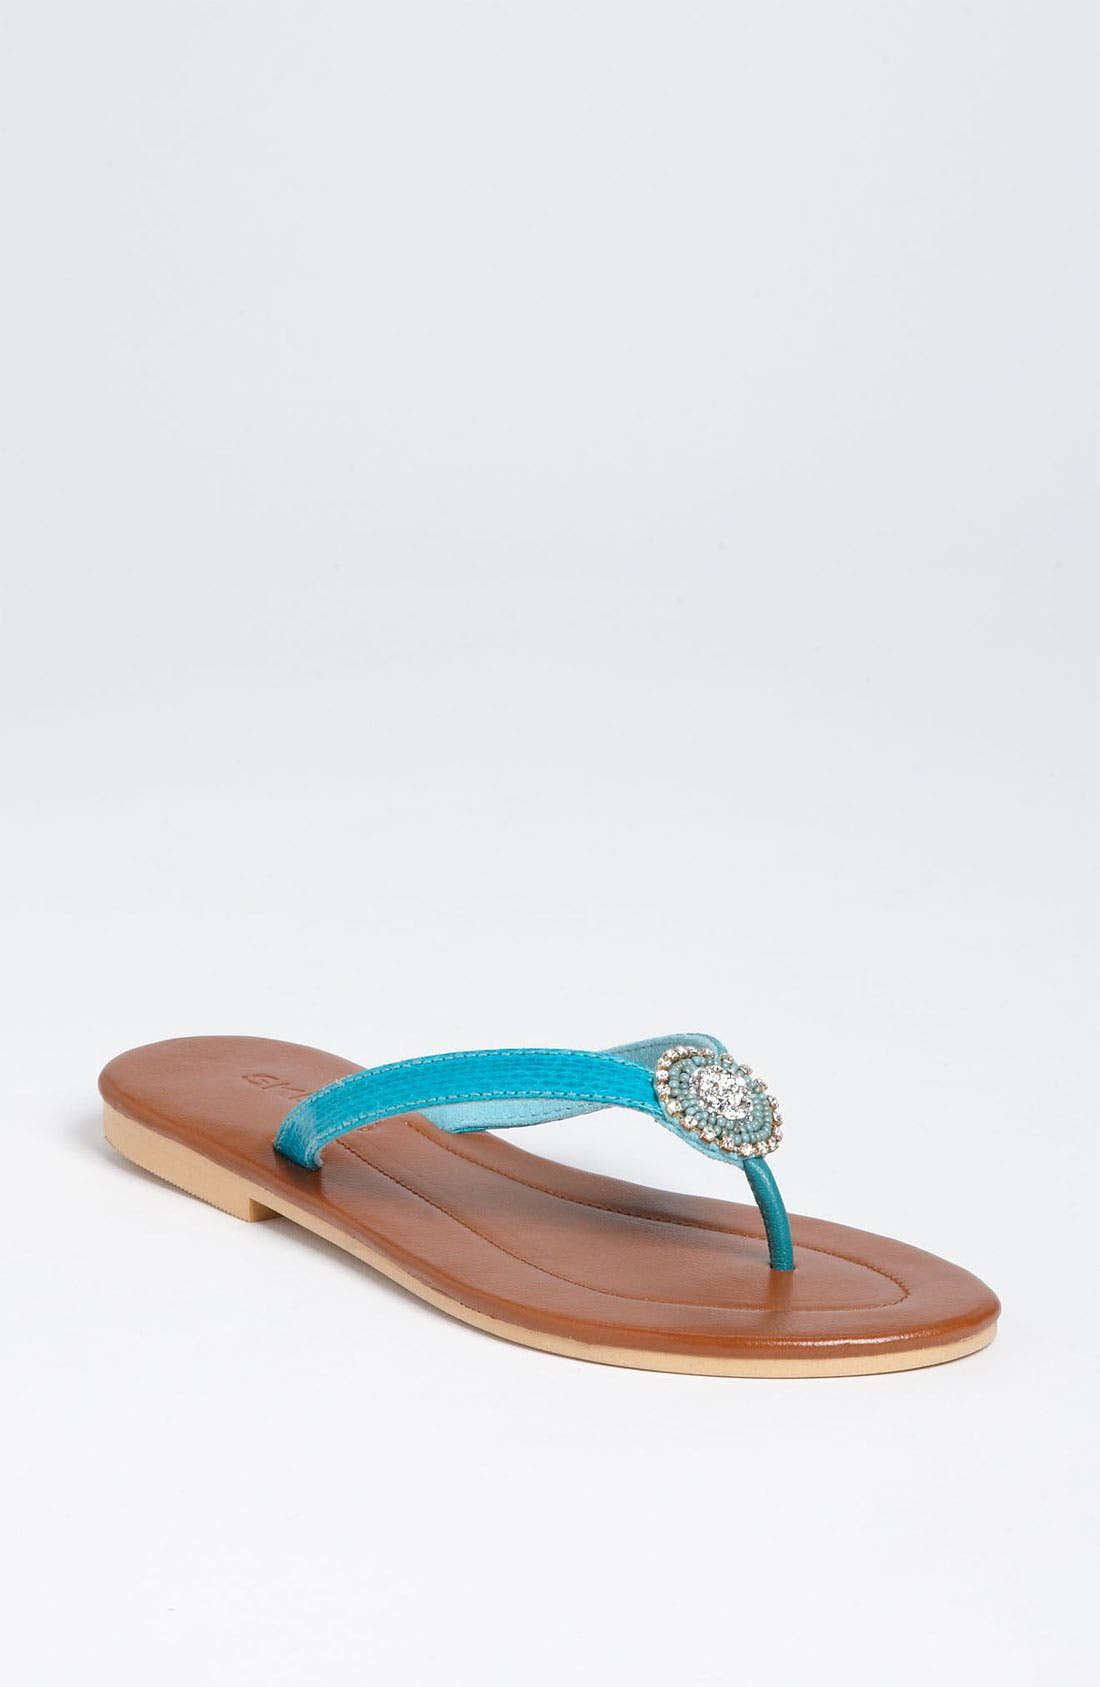 Alternate Image 1 Selected - Skemo 'Vela' Sandal